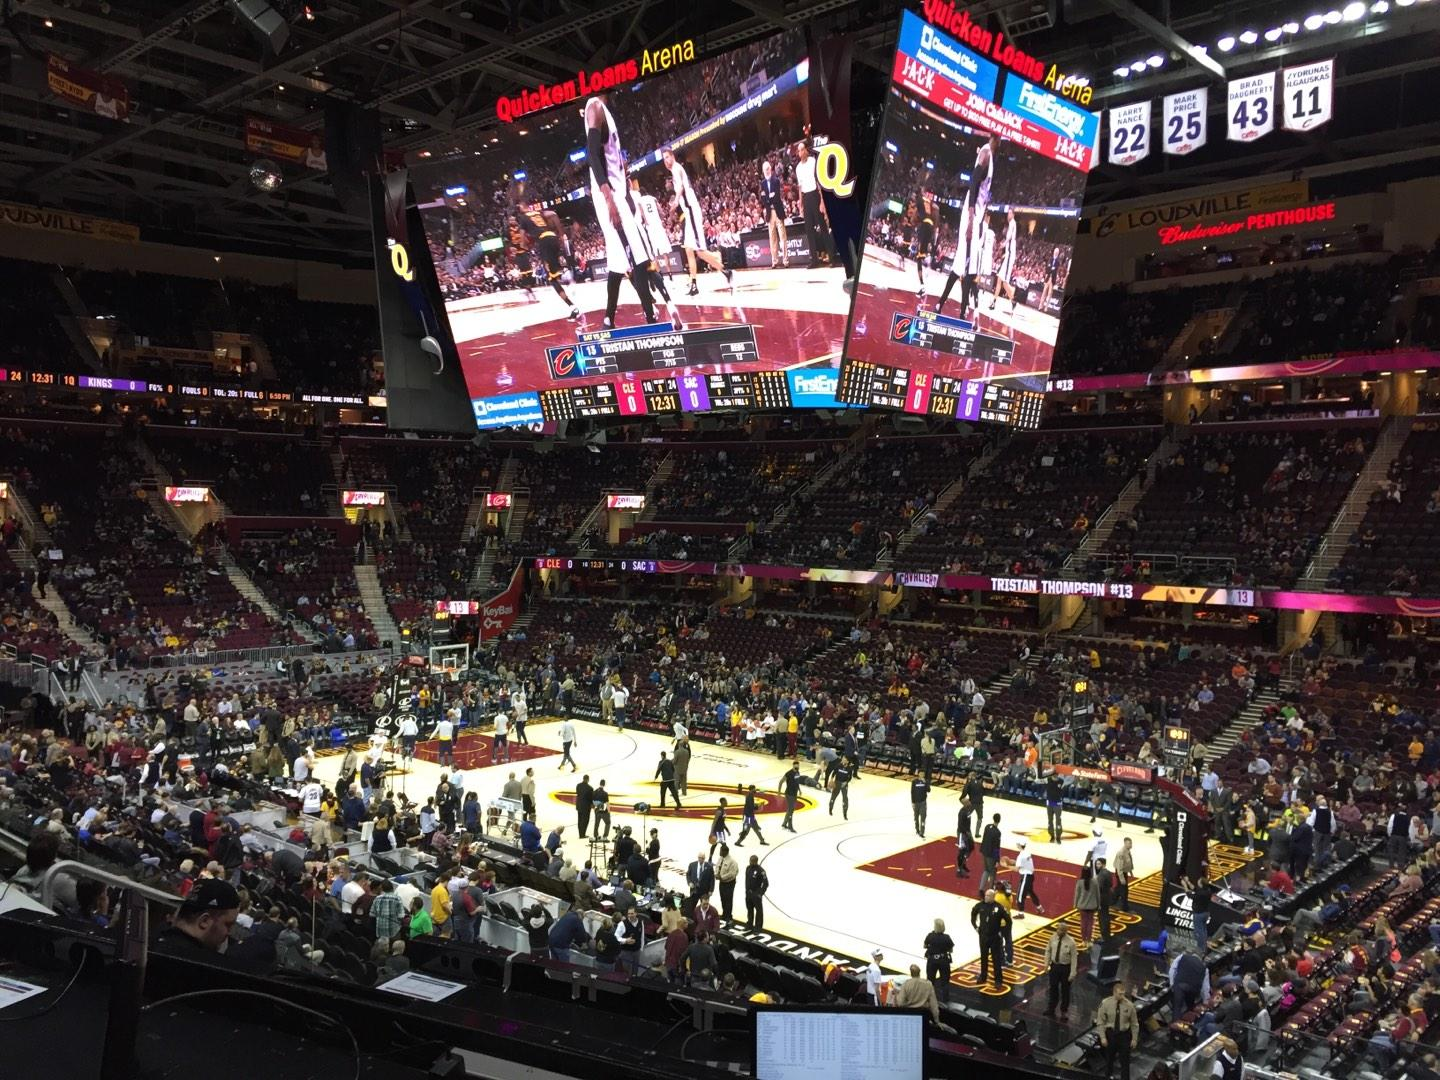 Quicken Loans Arena Section 128 Row 20 Seat 13